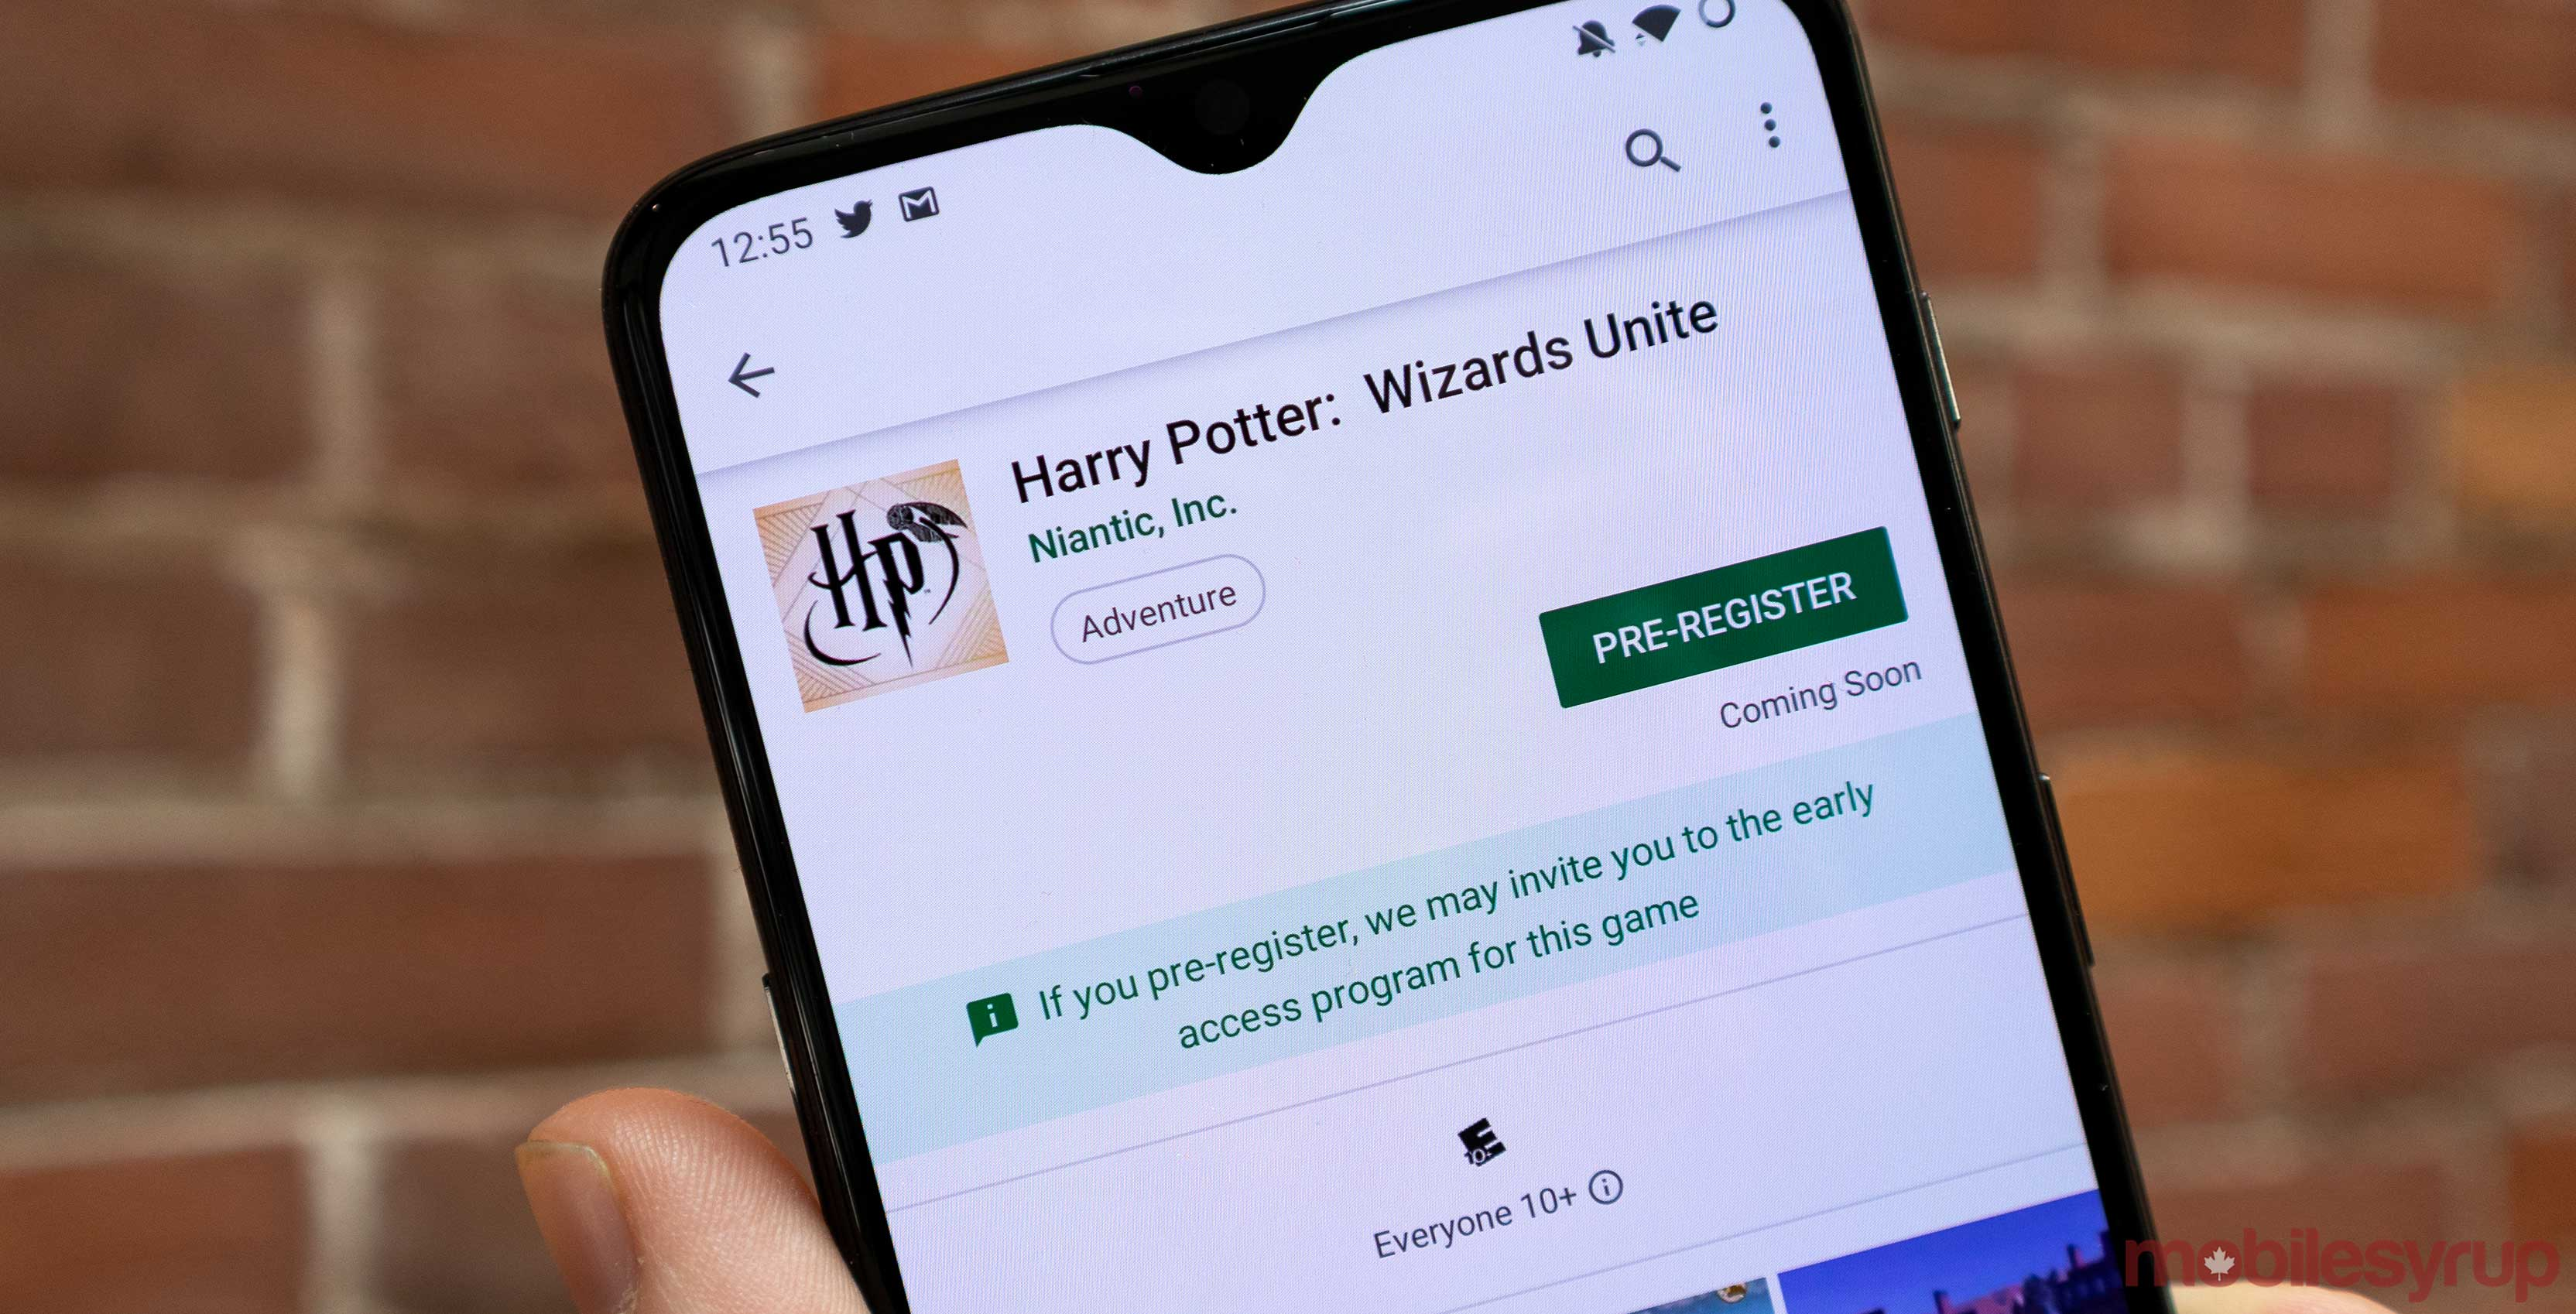 Niantic shows off its upcoming location-based Harry Potter AR game 1fbeb513a2